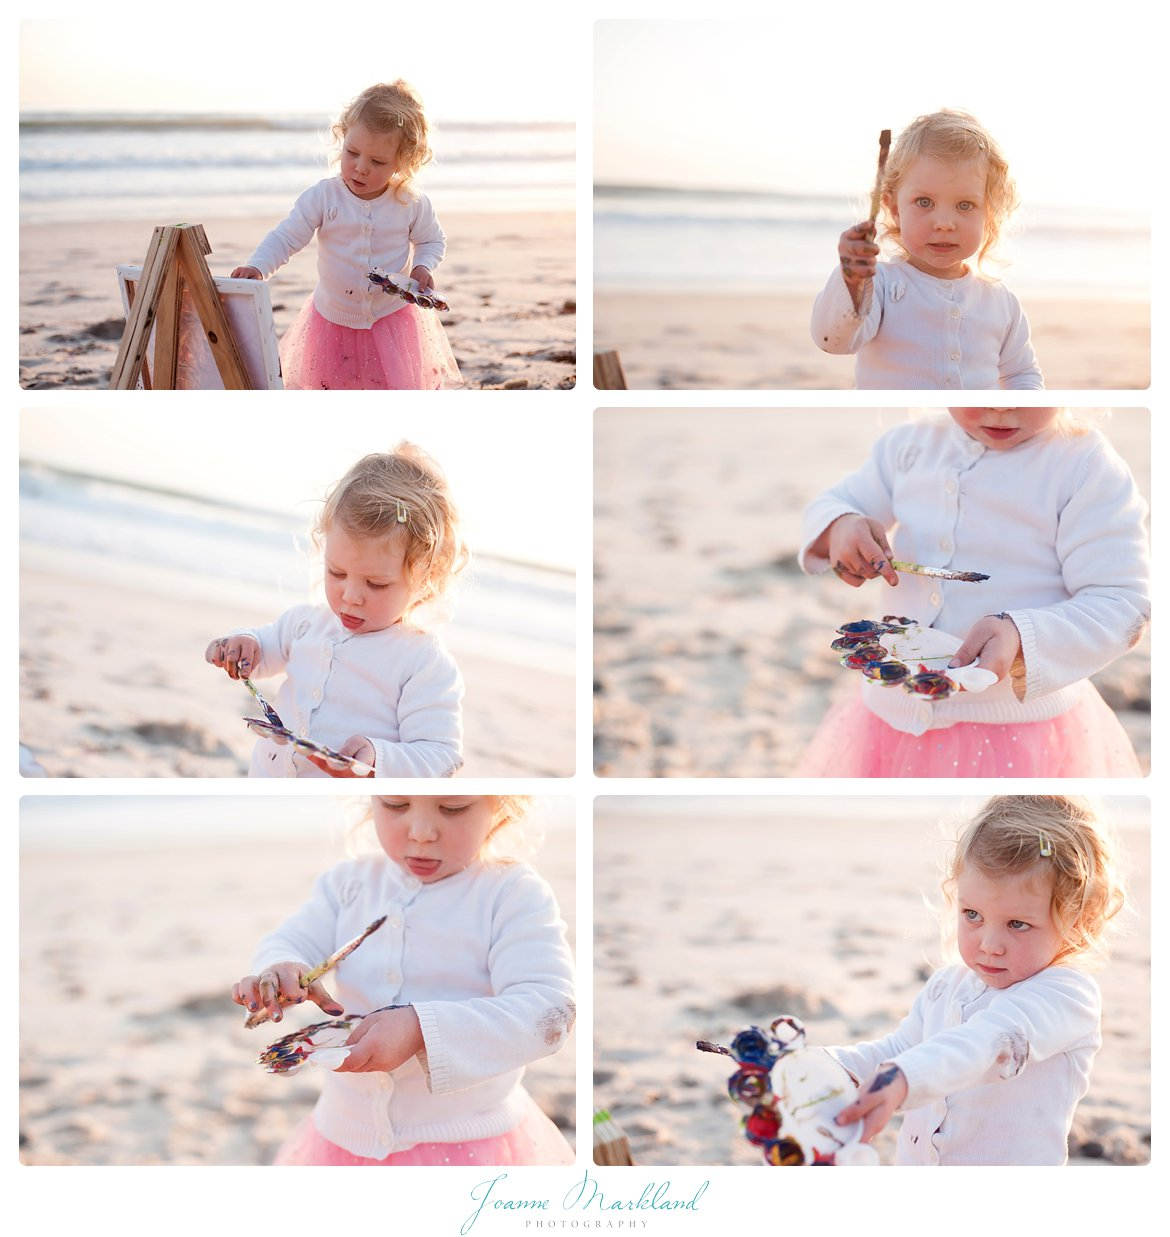 toddler-birthday-portraits-family-photographer-joanne-markland-photography-cape-town-011